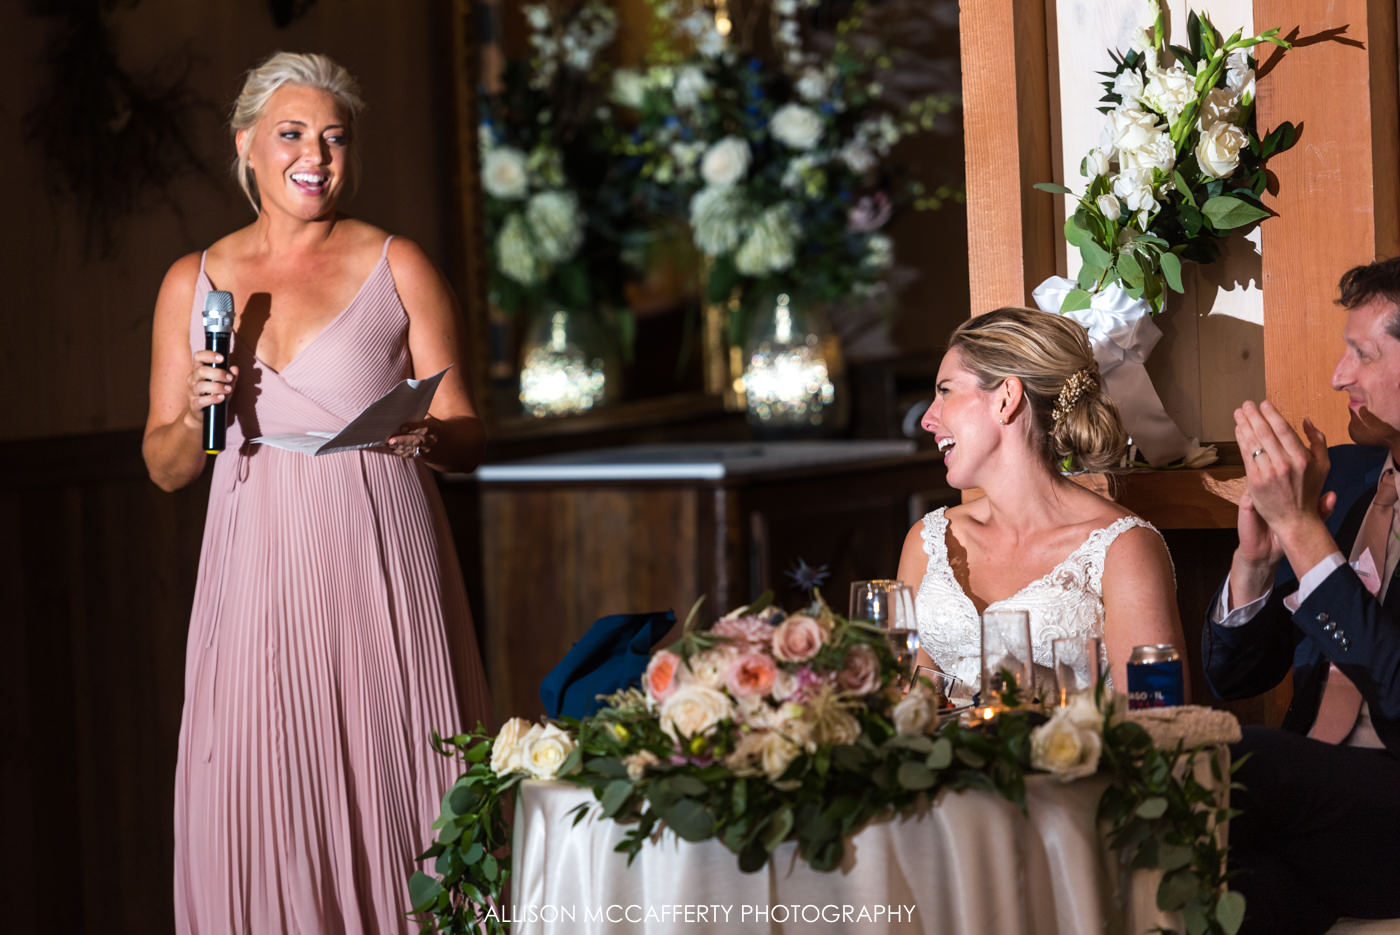 Bridal party speeches at Rose Bank Winery wedding